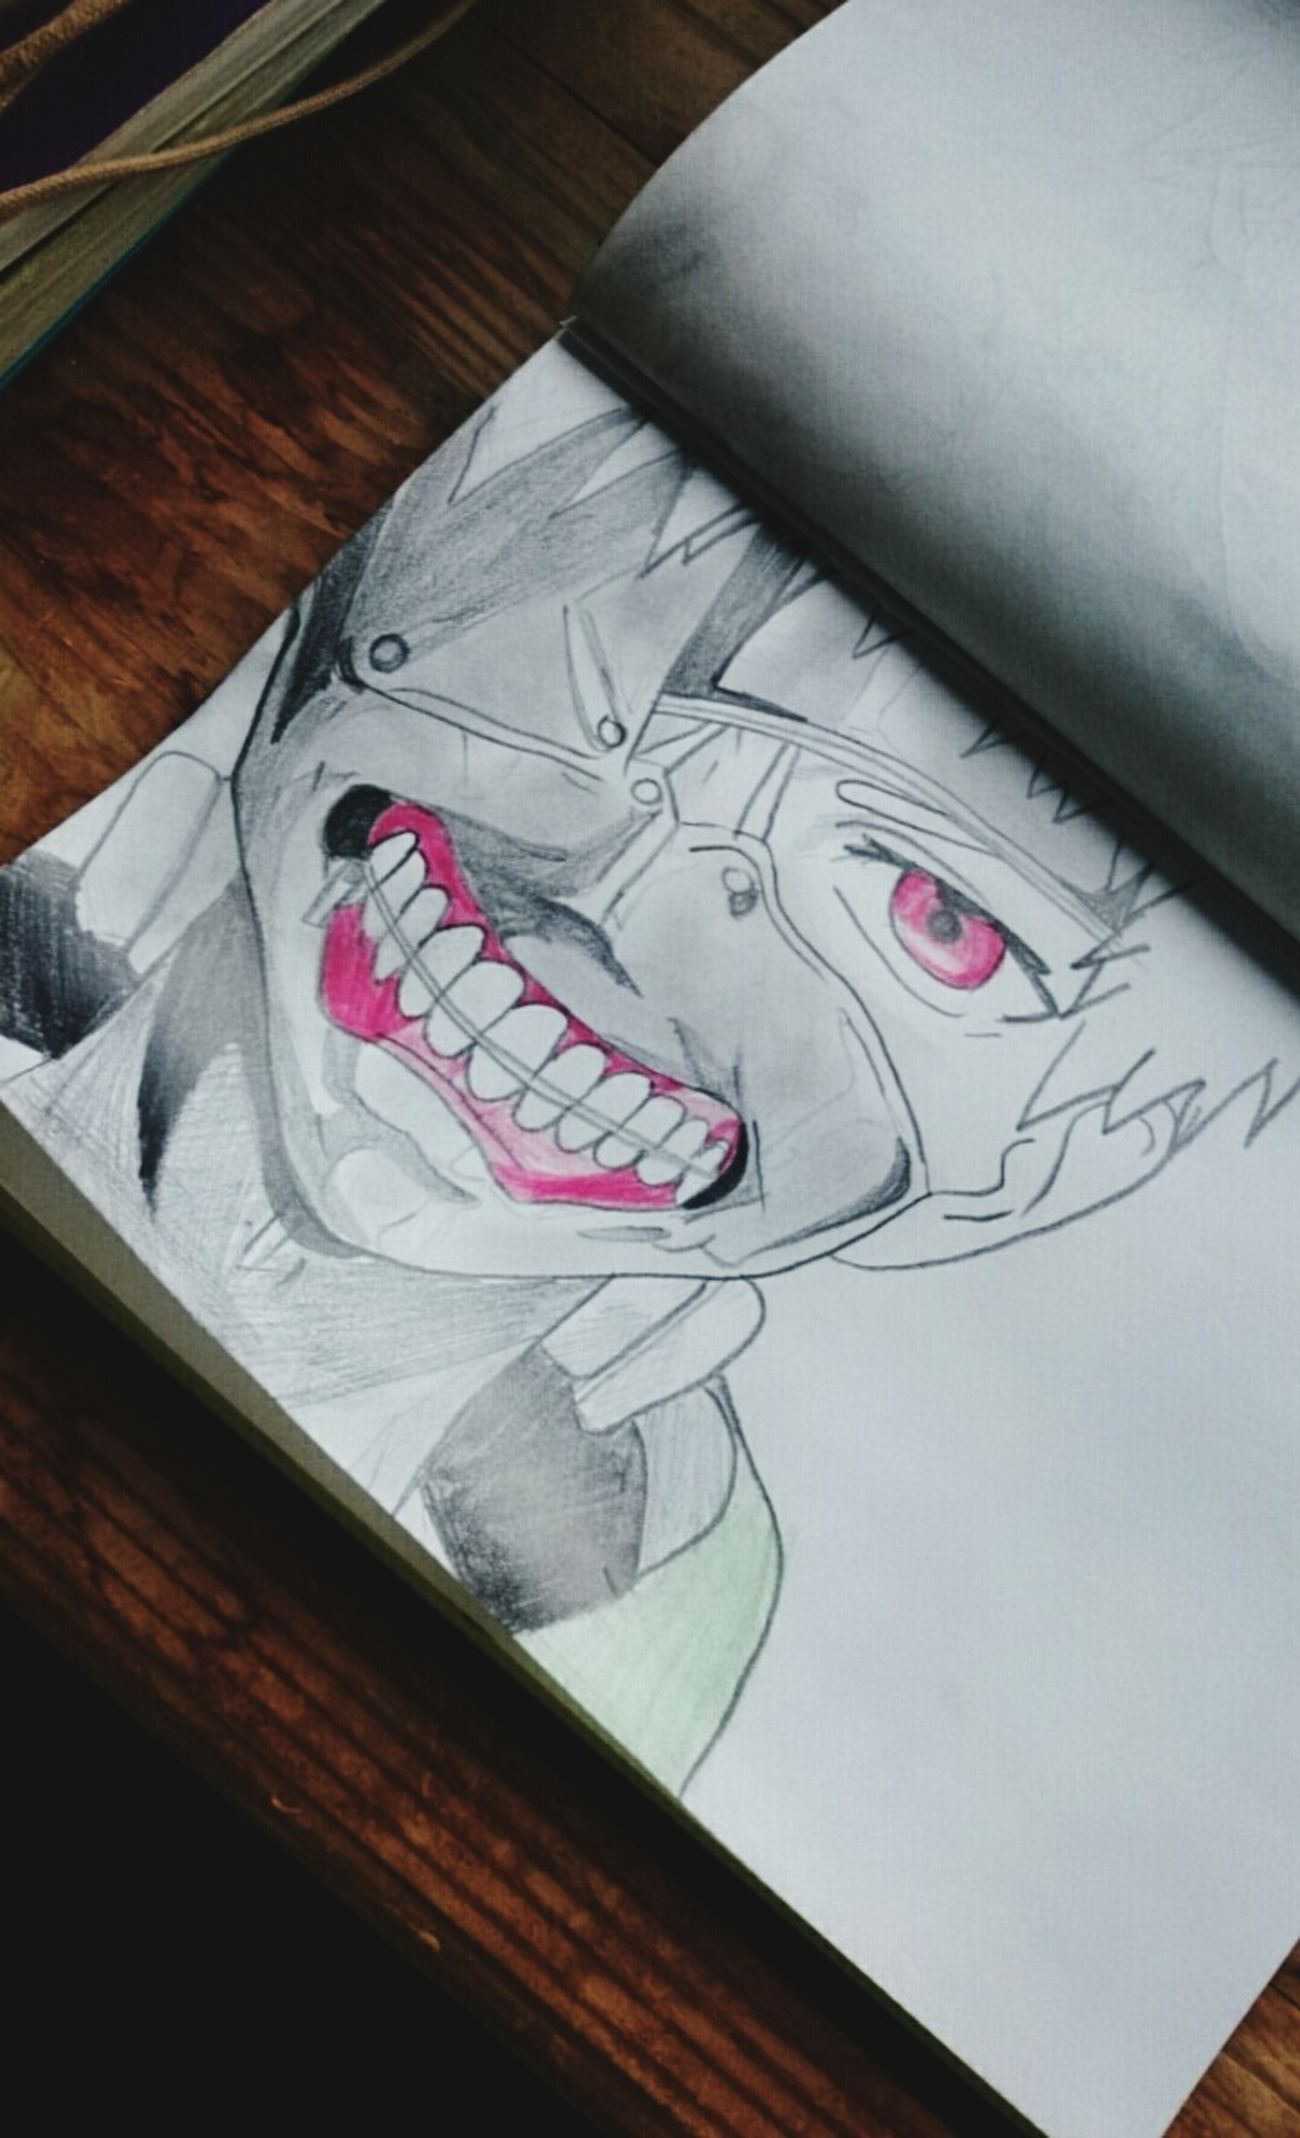 Did a drawing Tokyo Ghoul Kanekiken Drawing Art Shadowing Anime Anime Lover My Favorite Anime